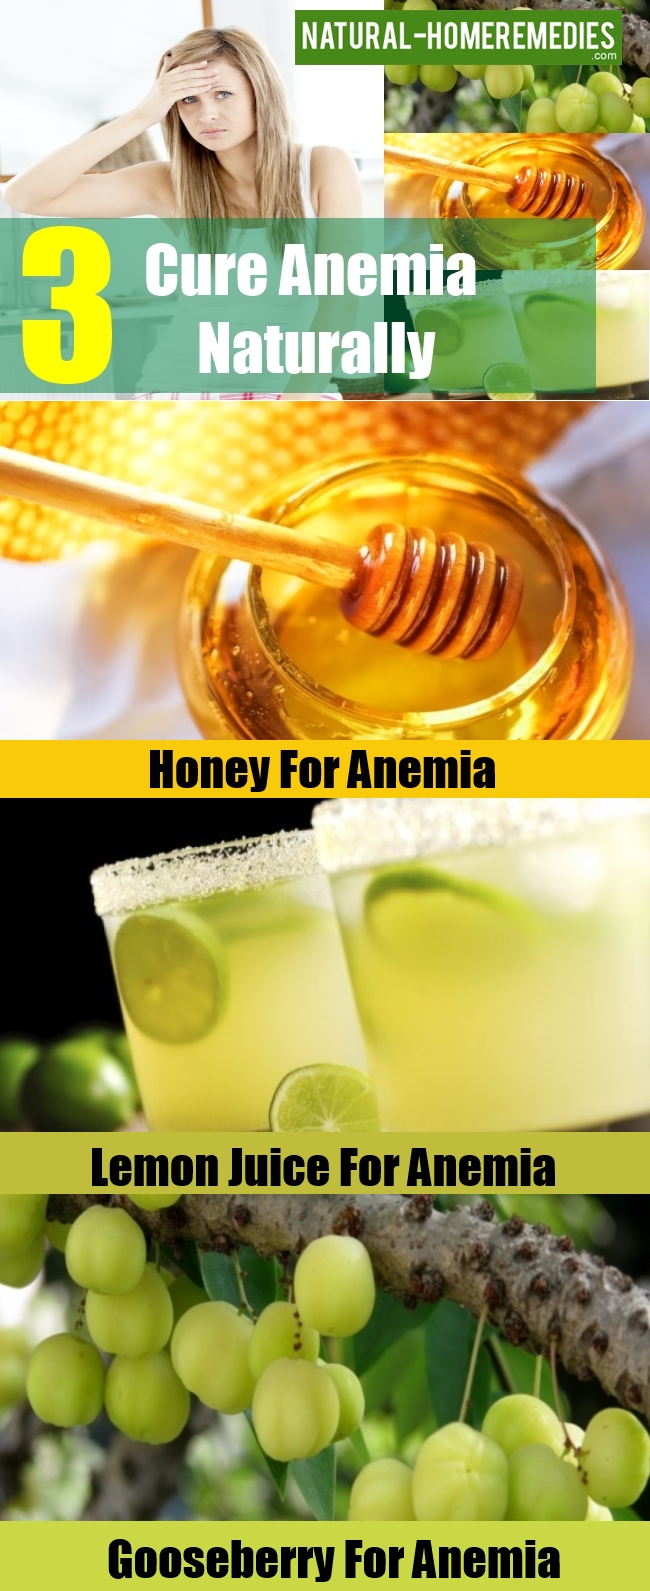 Cure Anemia Naturally